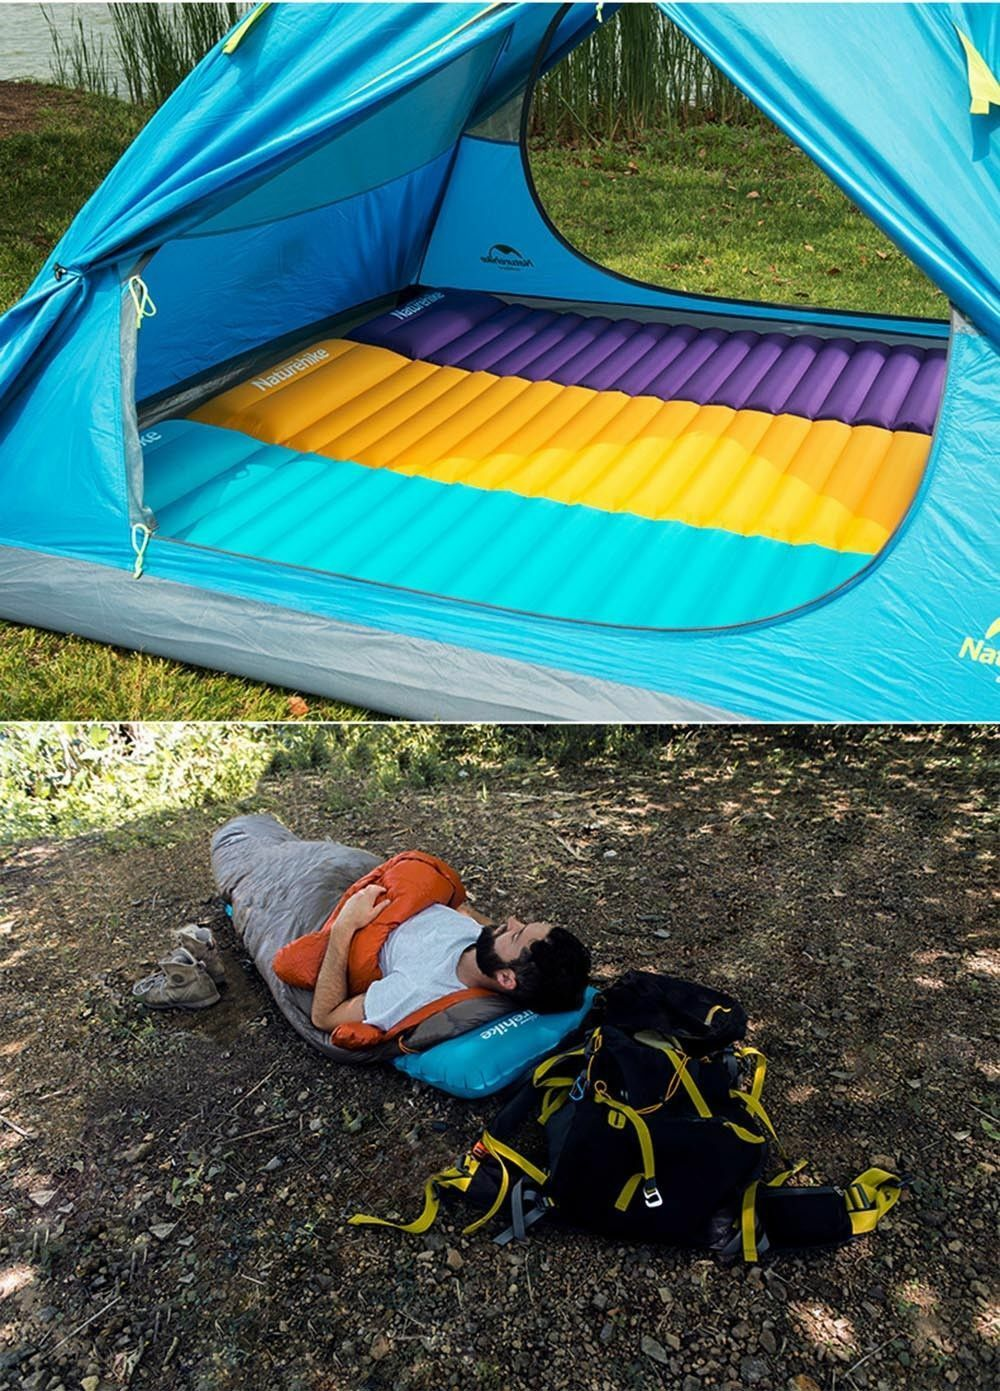 Camping Beach  Hand-press Inflatable Sleeping Pad Bed Single Tent Air Mat Mattres  up to 70% off